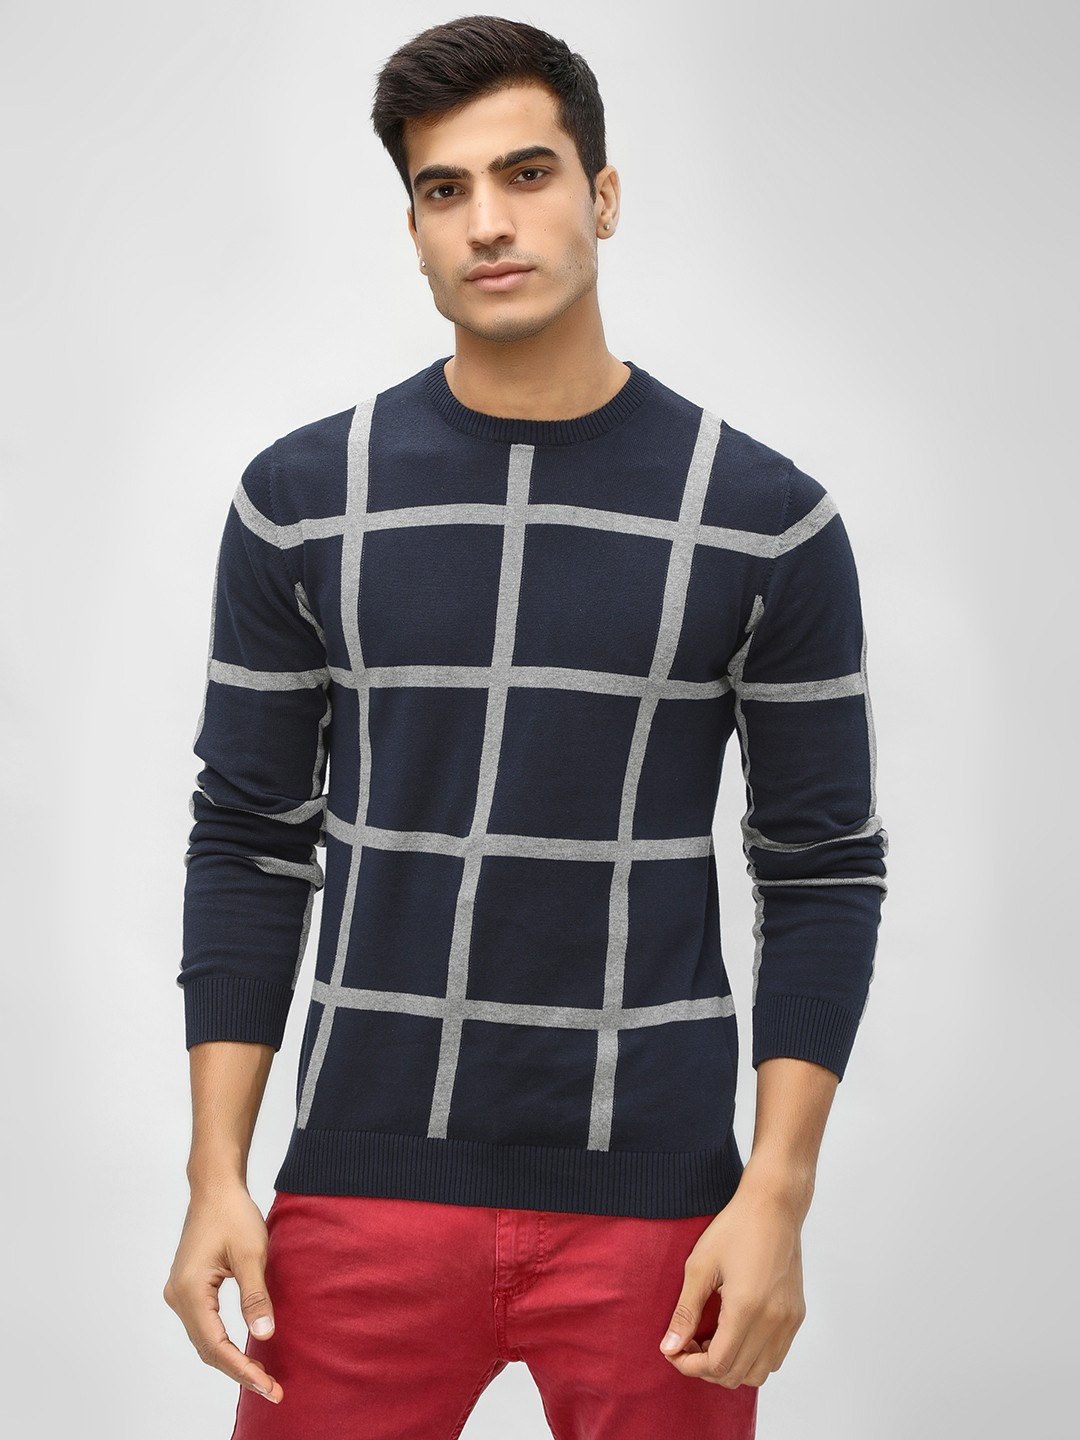 Akiva Blue Windowpane Check Crew Neck Pullover 1